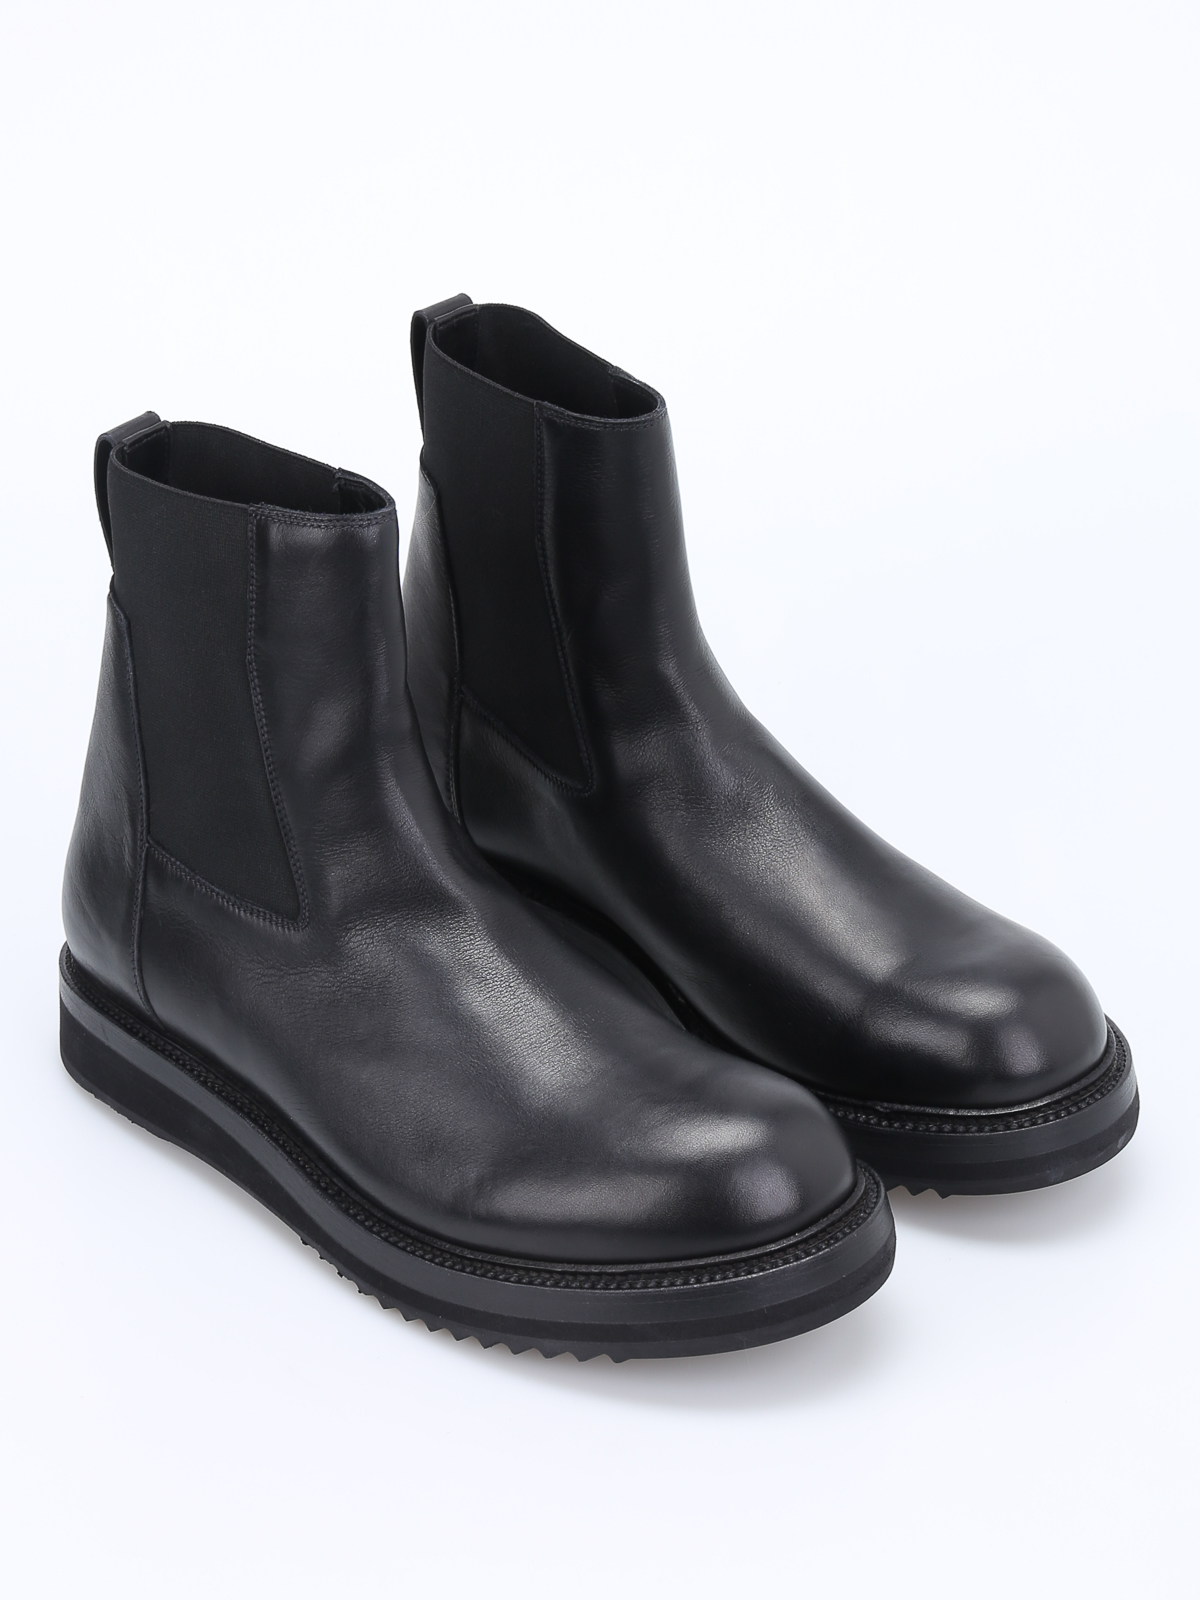 Chelsea ankle boots - Black Rick Owens Free Shipping Footlocker Finishline For Sale Very Cheap qC751NKpx